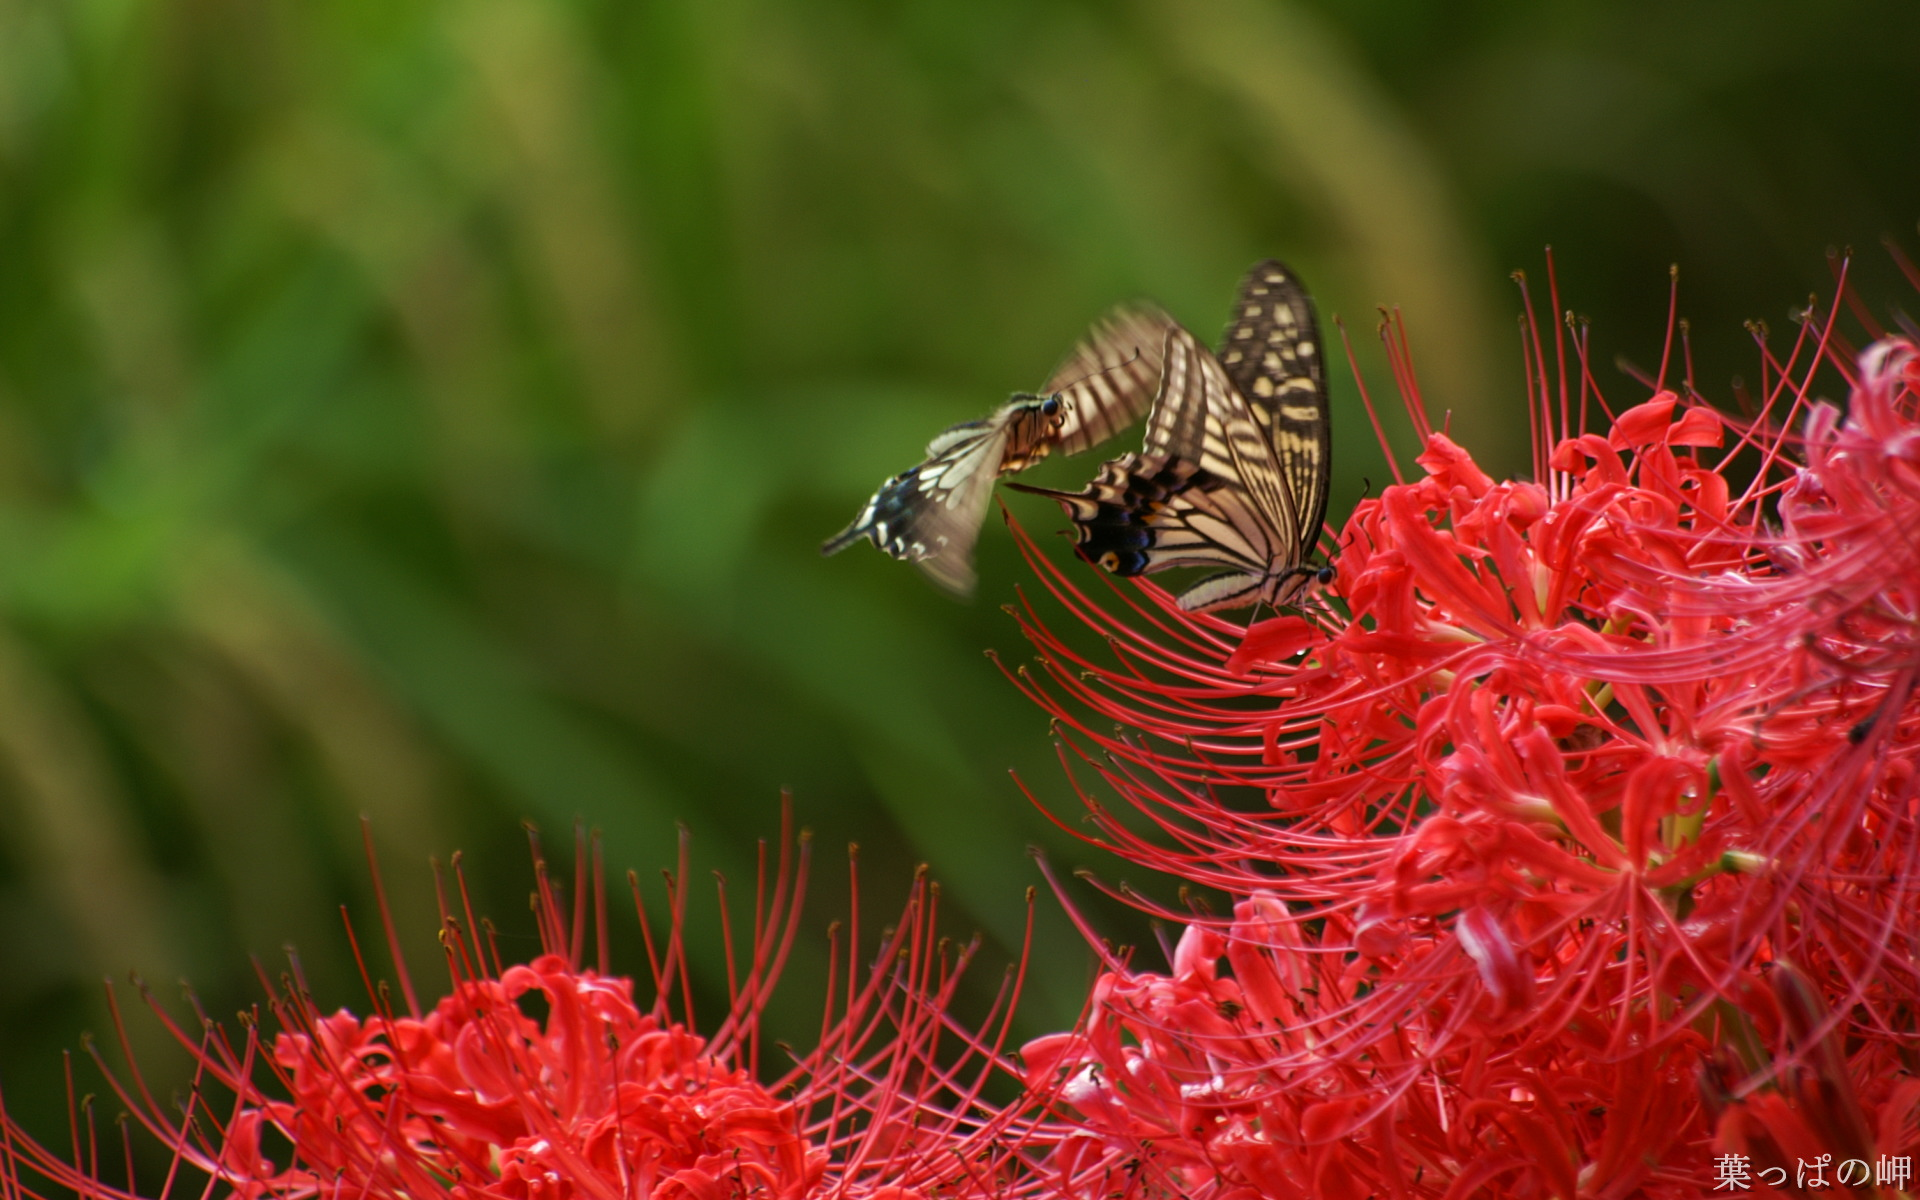 click to free download the wallpaper--Digital Flower Photography, Butterflies on Red Flower, Never Depart 1920X1200 free wallpaper download